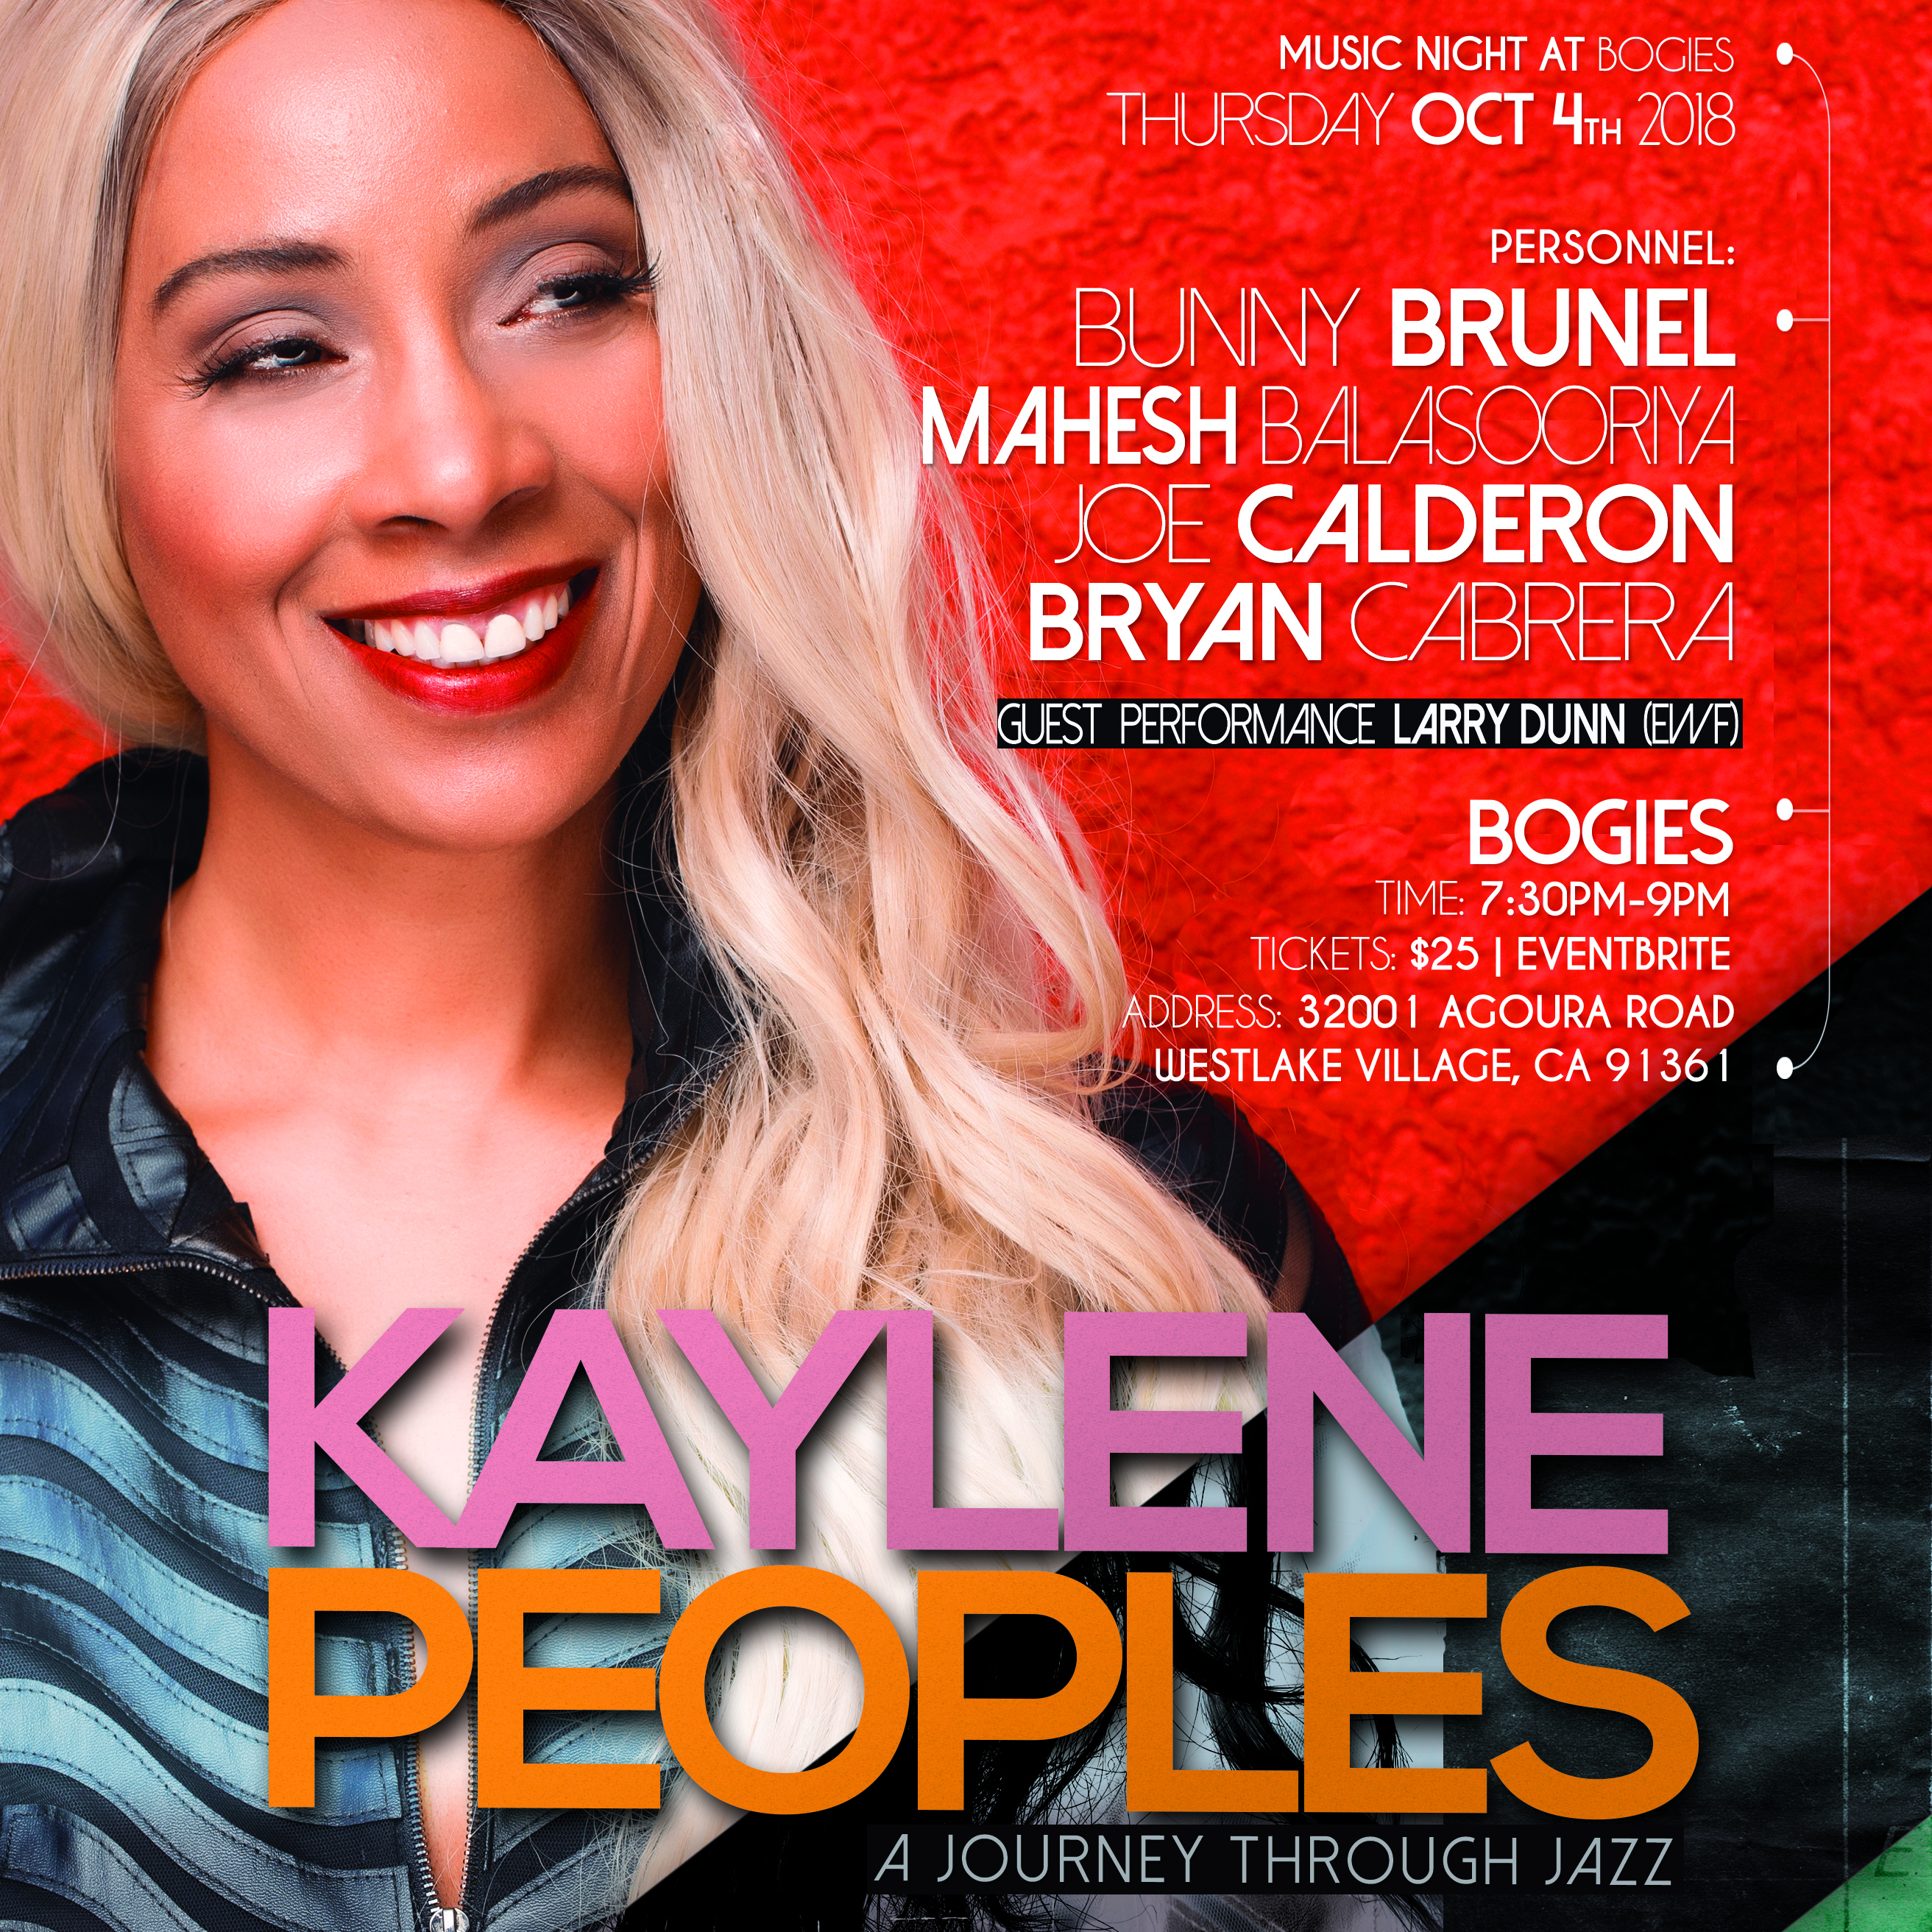 Kaylene Peoples - A Journey Through Jazz with Special Guest Larry Dunn